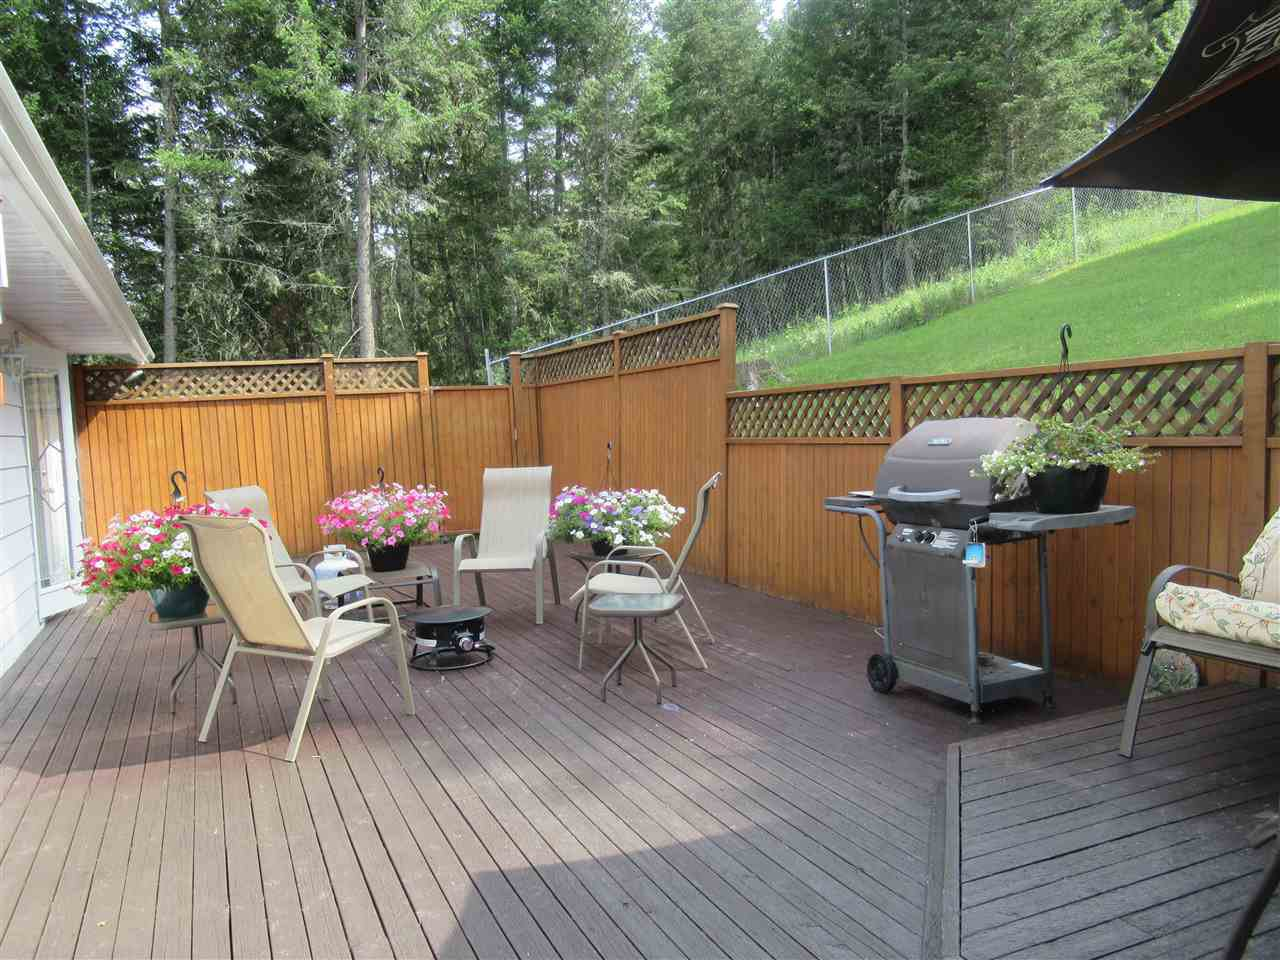 Photo 19: Photos: 607 ROBERTS Drive in Williams Lake: Esler/Dog Creek House for sale (Williams Lake (Zone 27))  : MLS®# R2391926